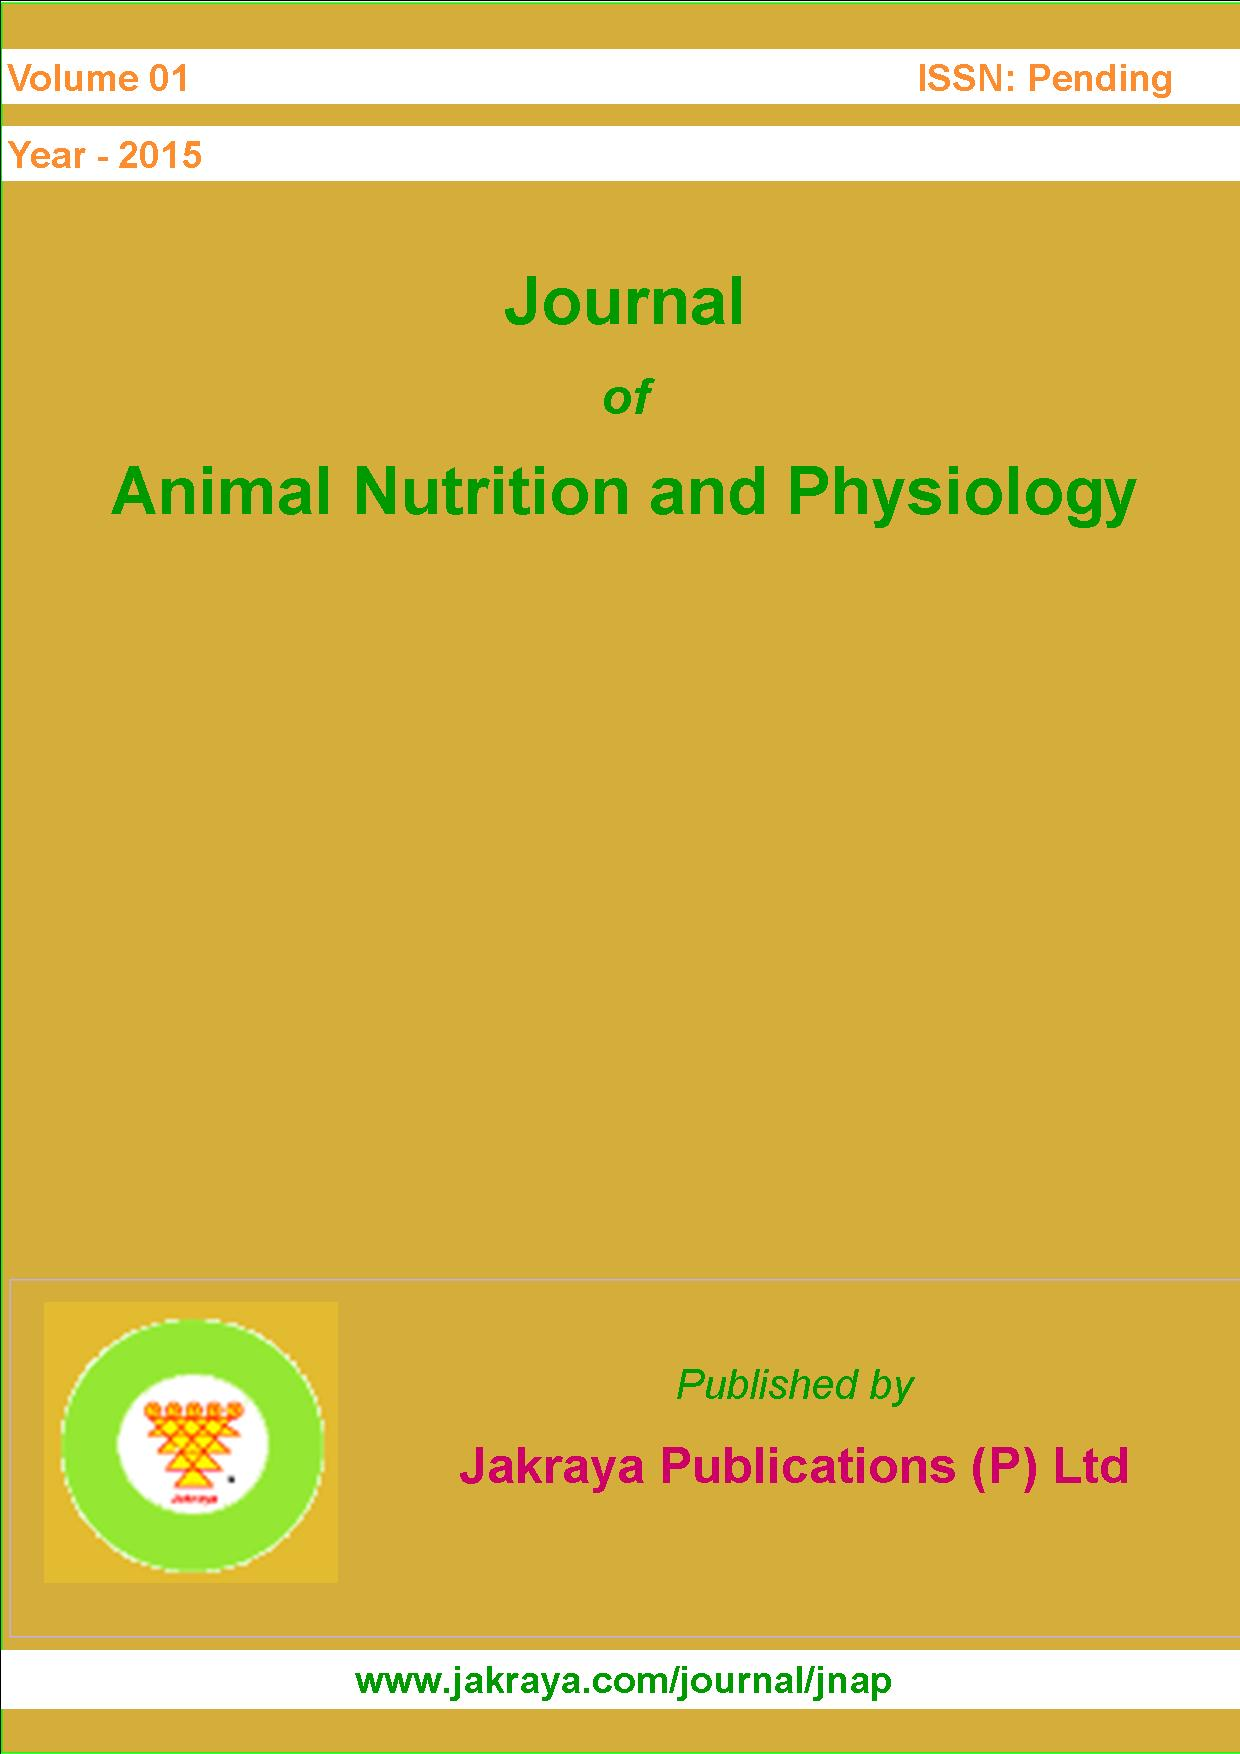 Journal of Animal Nutrition and Physiology